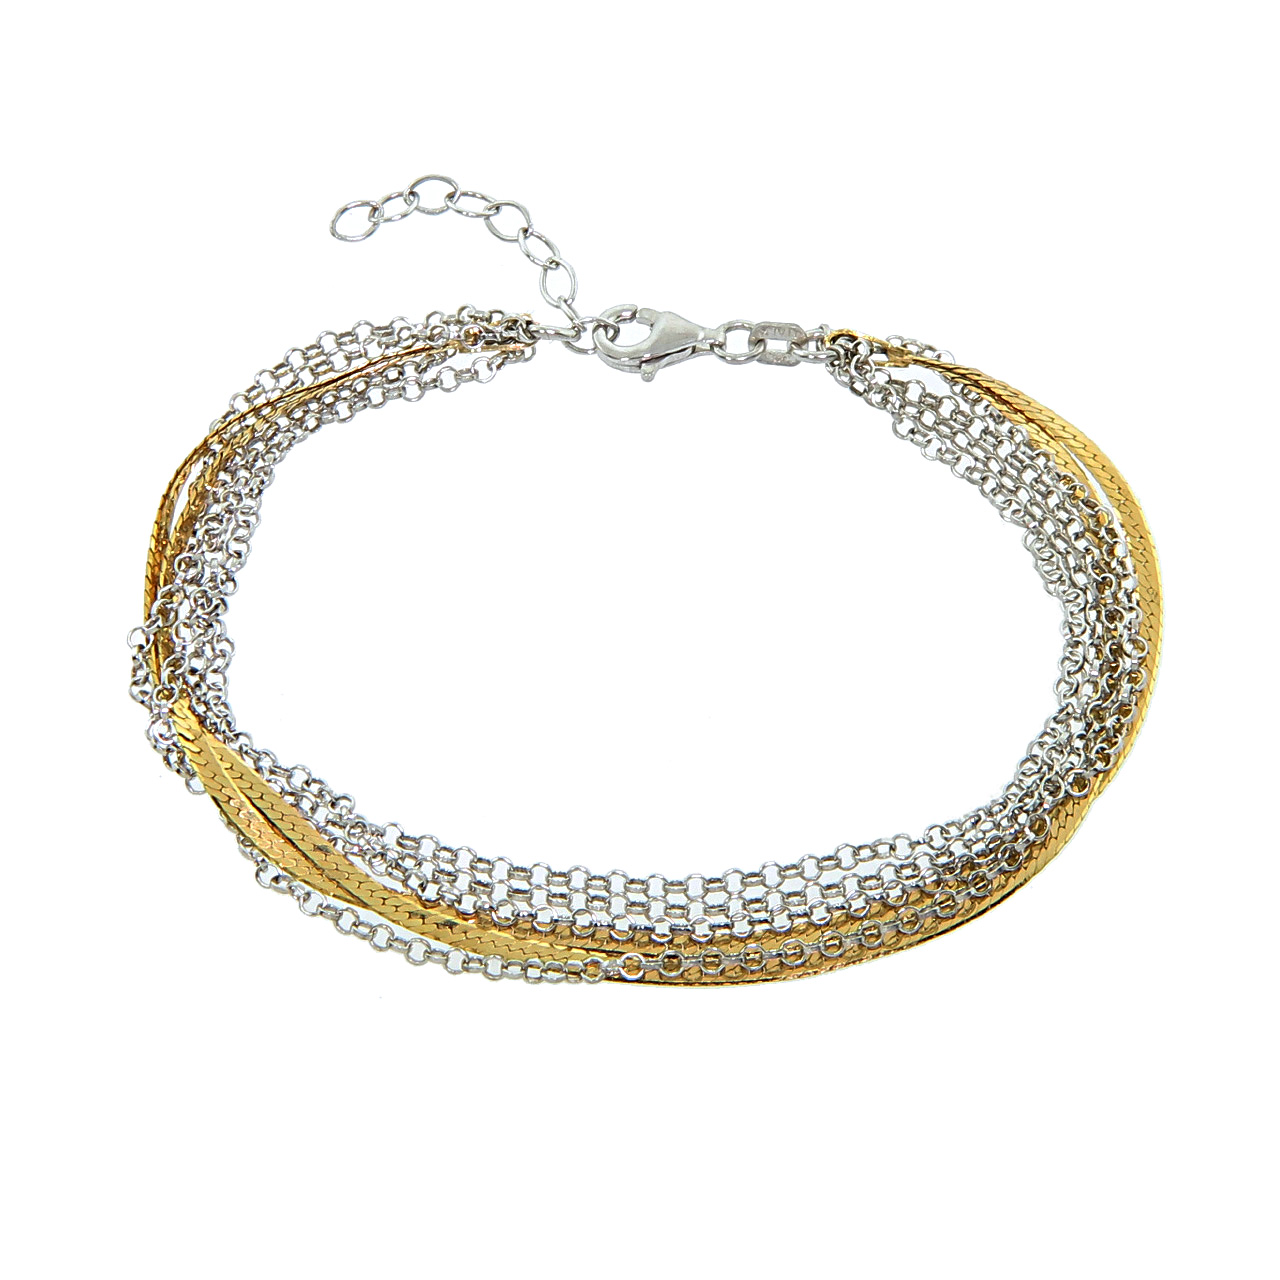 Italian Two Tone Gold Plated Sterling Silver 5 Strand Bracelet